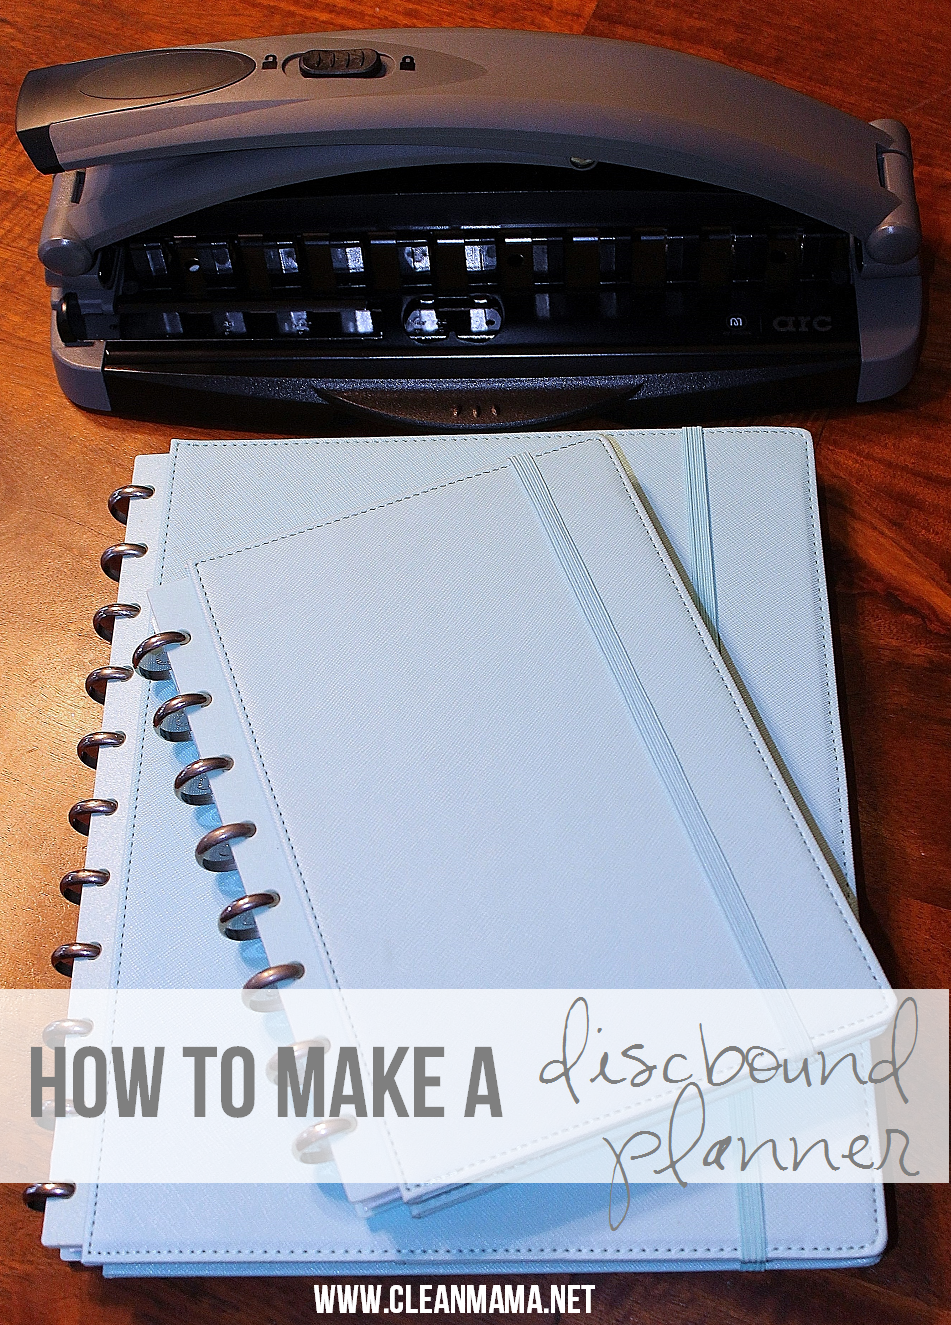 How to make a discbound planner via Clean Mama